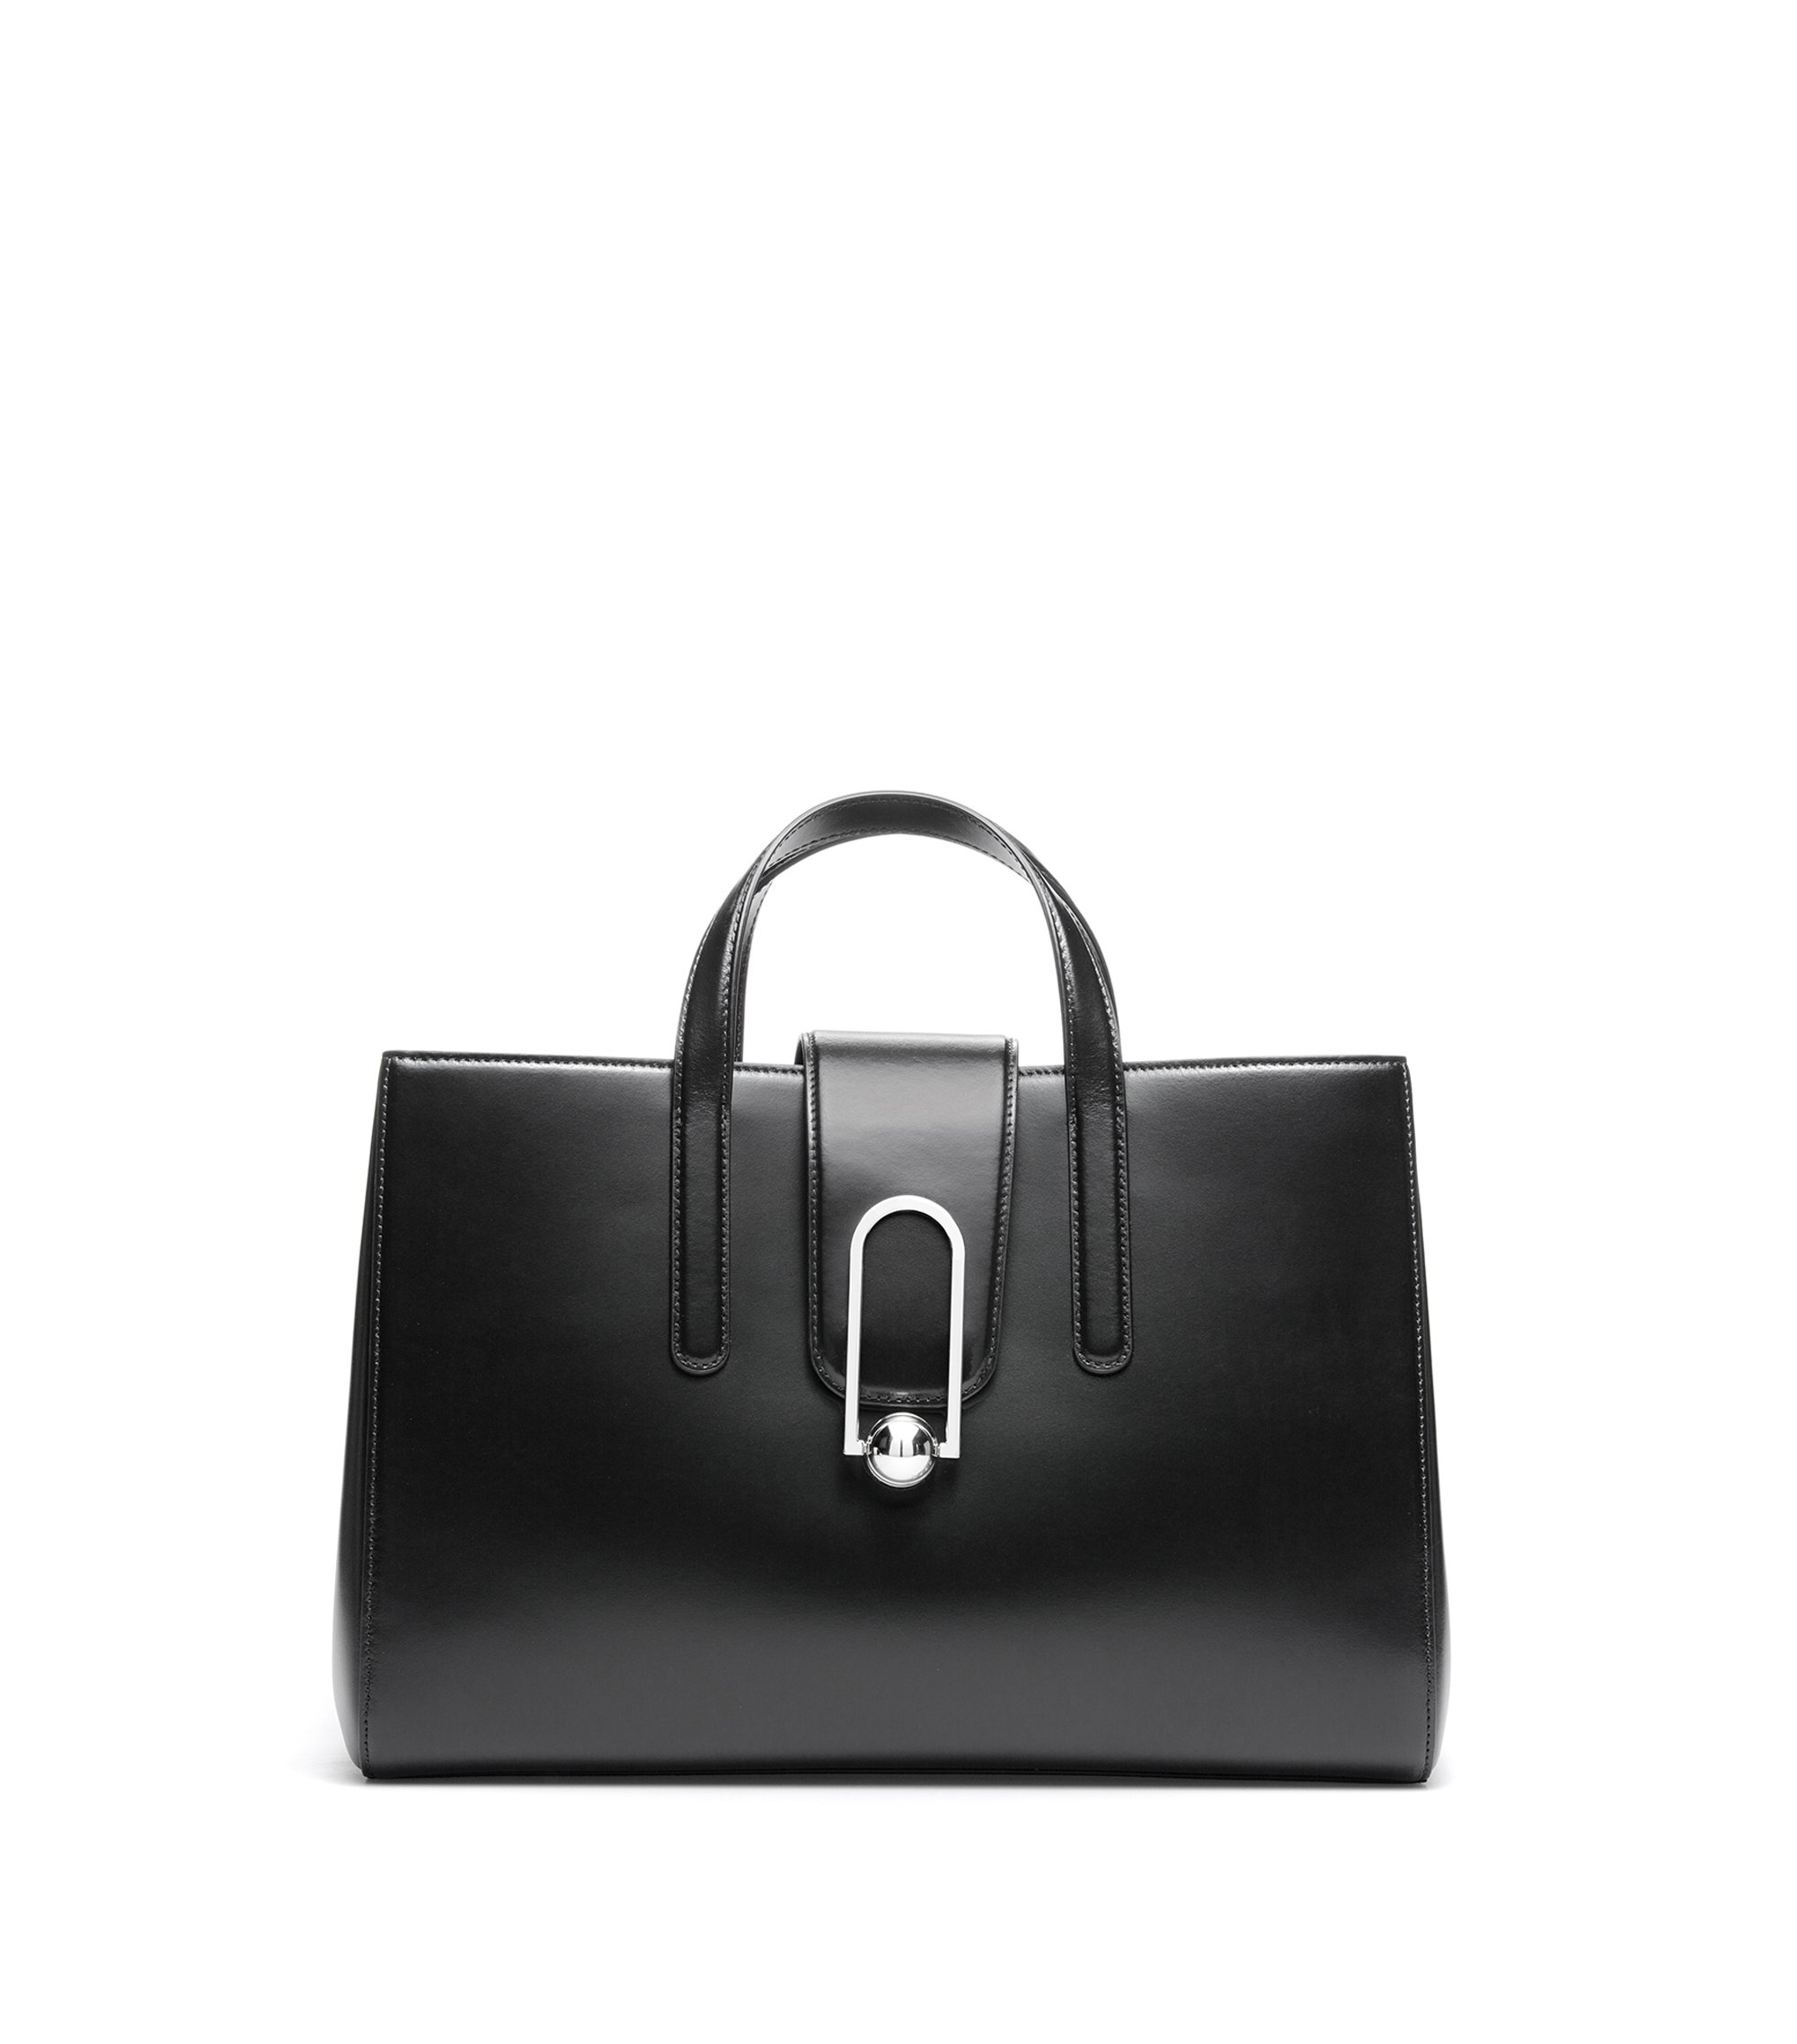 Tote bag in coated leather with embossed logo, Black